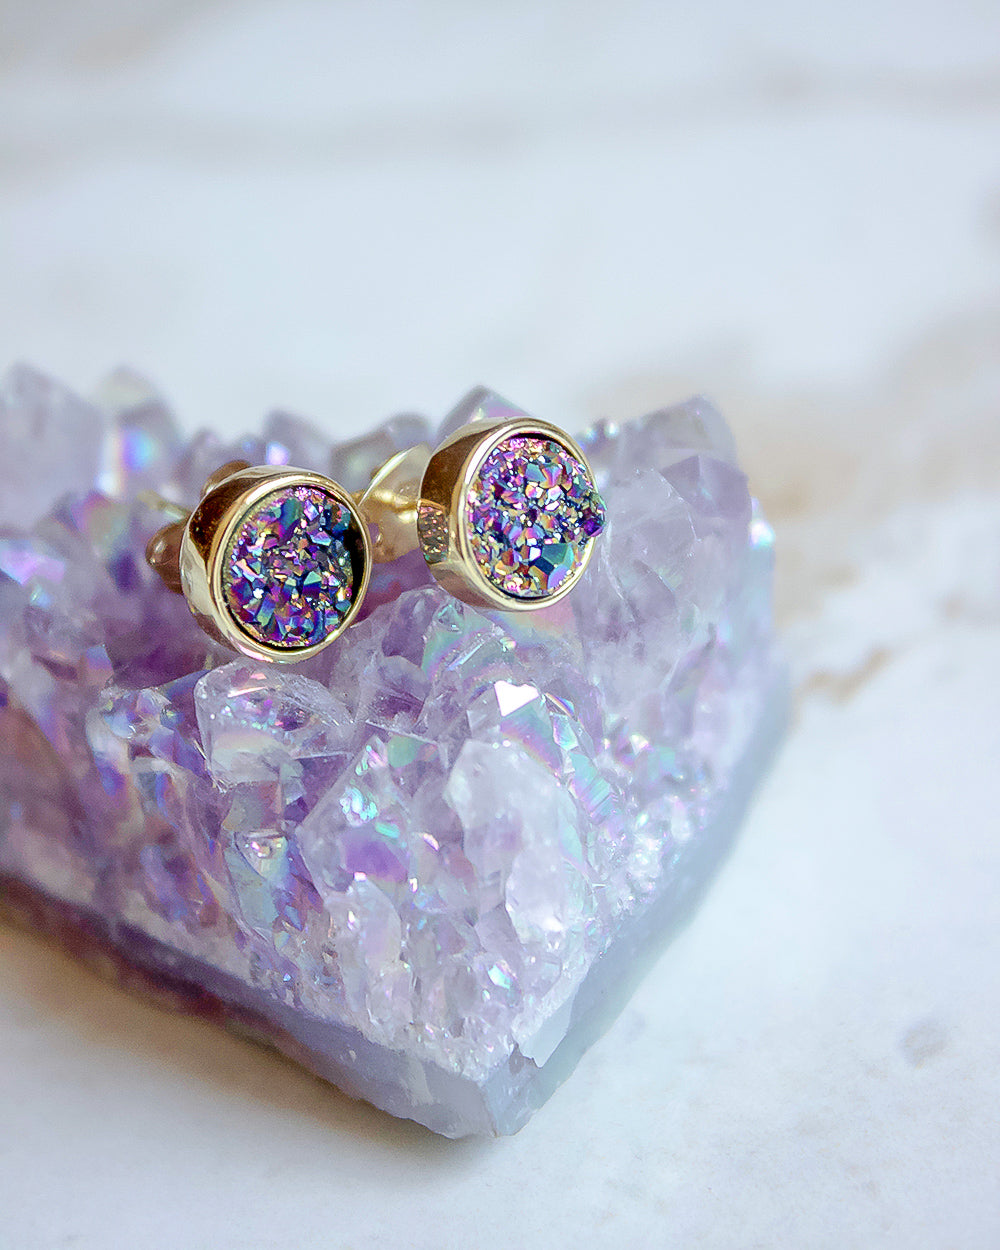 24KT Gold Plated 8mm Druzy Stud Earrings in Rainbow Galaxy